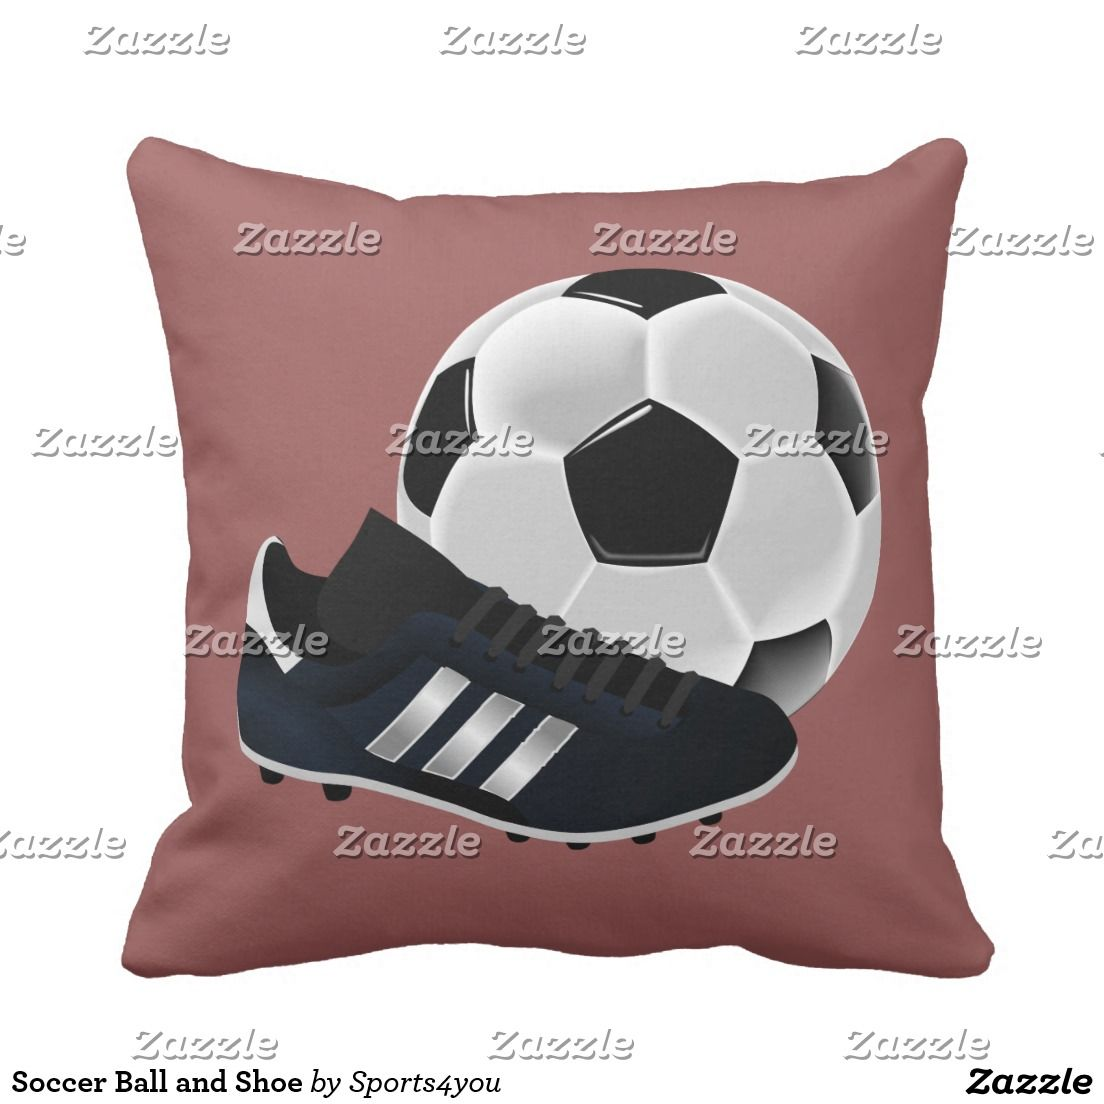 Soccer Ball and Shoe Throw Pillow by #Sports4you #Gravityx9 #Zazzle -  Hey, Soccer Players and Fans! You can customize this item by changing the background color to each side of the pillow, adding text, a photo or resizing the image to be larger, smaller, or tiled to fill the entire area!